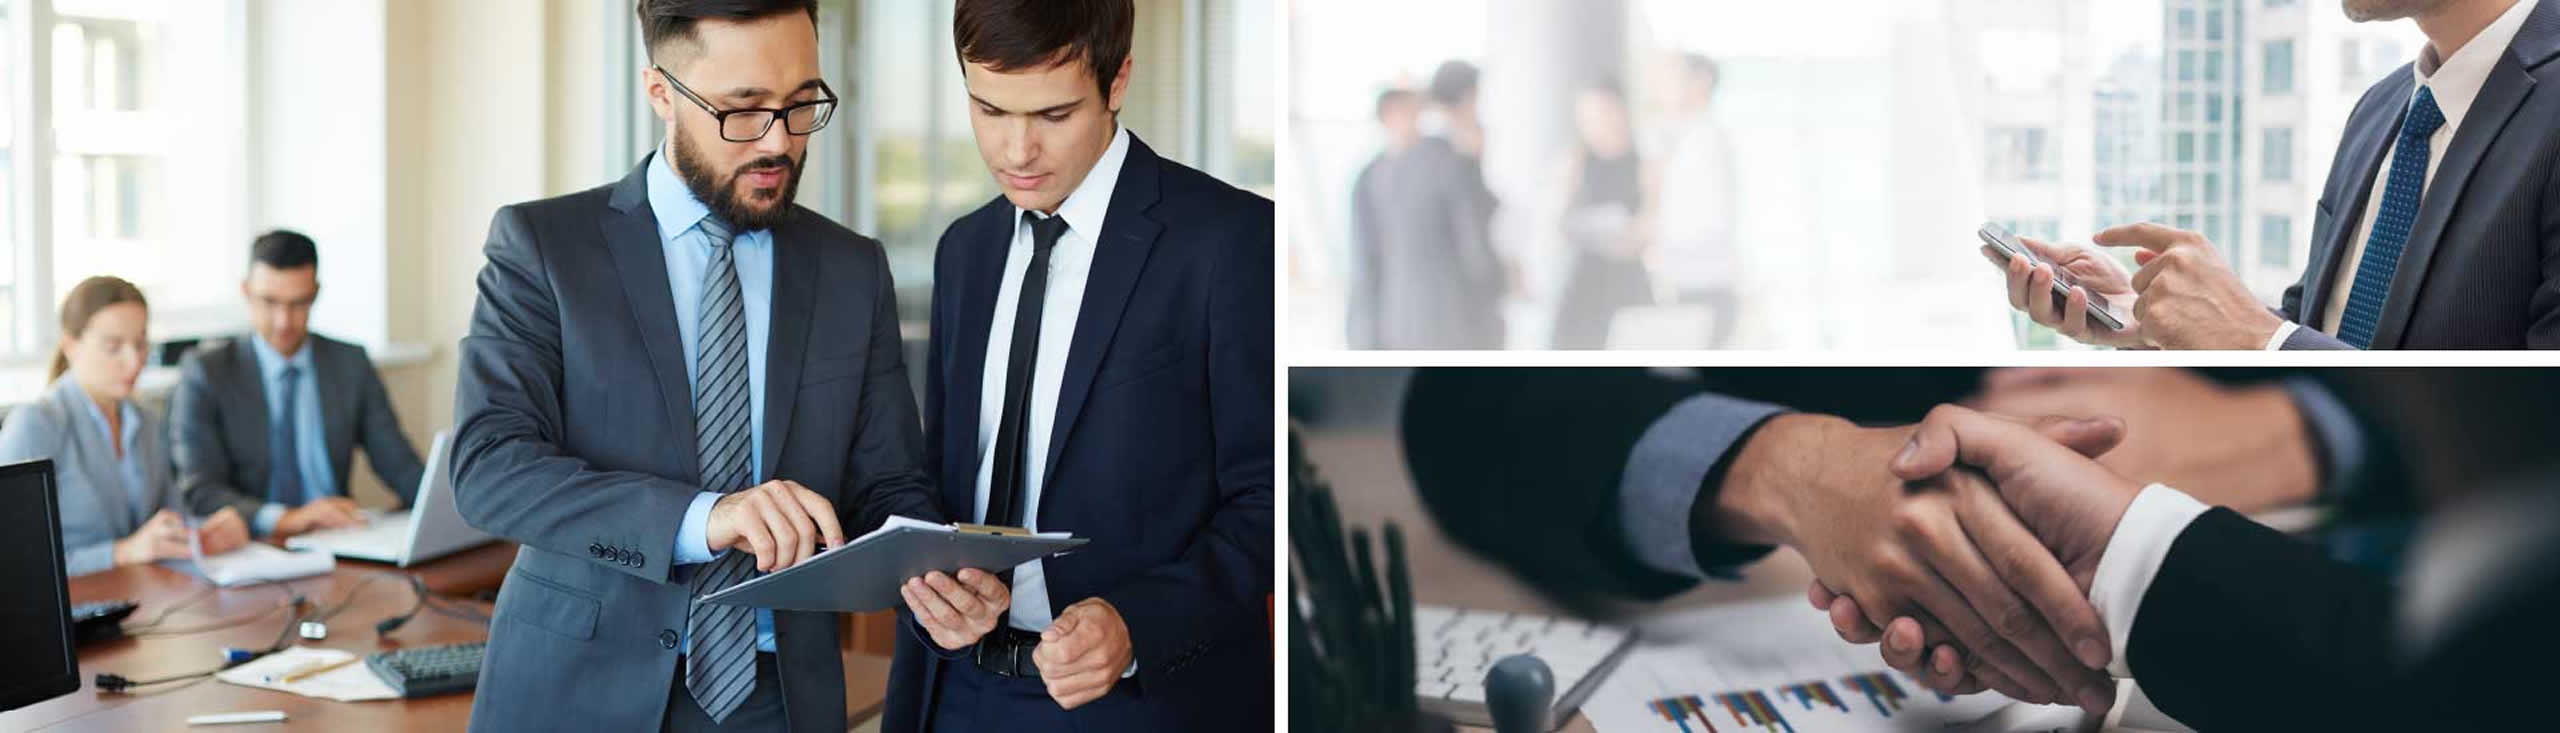 Three images of business executives discussing projects, shaking hands and meeting in a conference room.